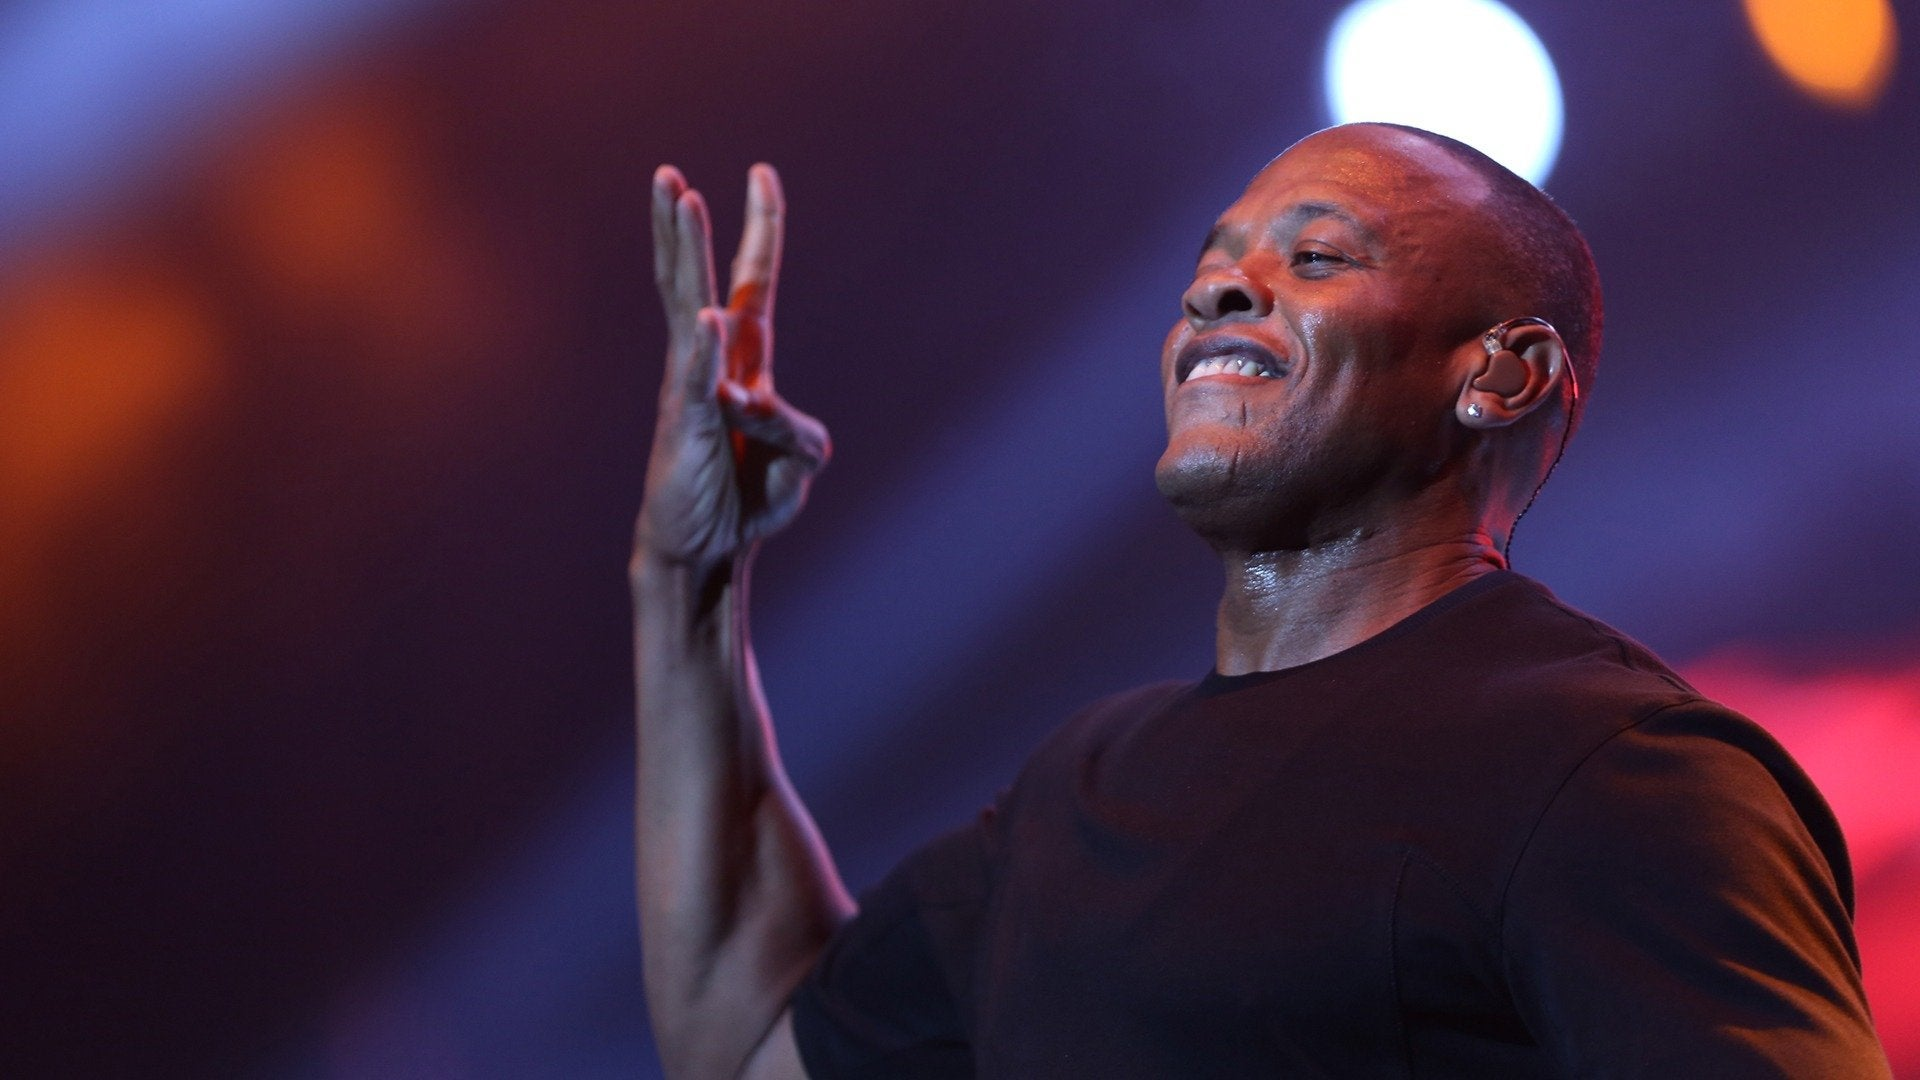 Dr. Dre - Another Beat